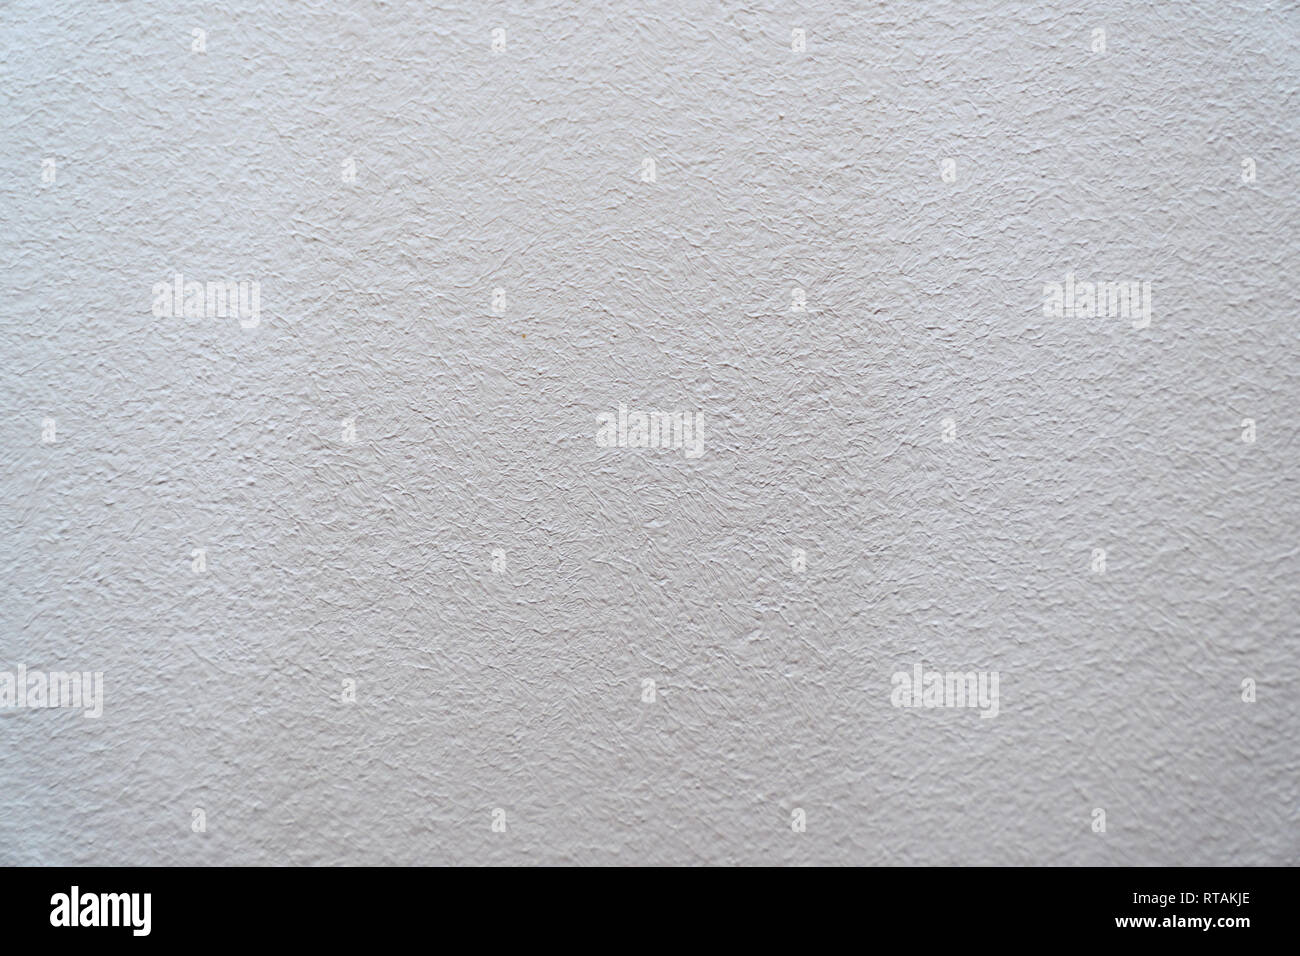 Grey wall coating texture for background - Stock Image